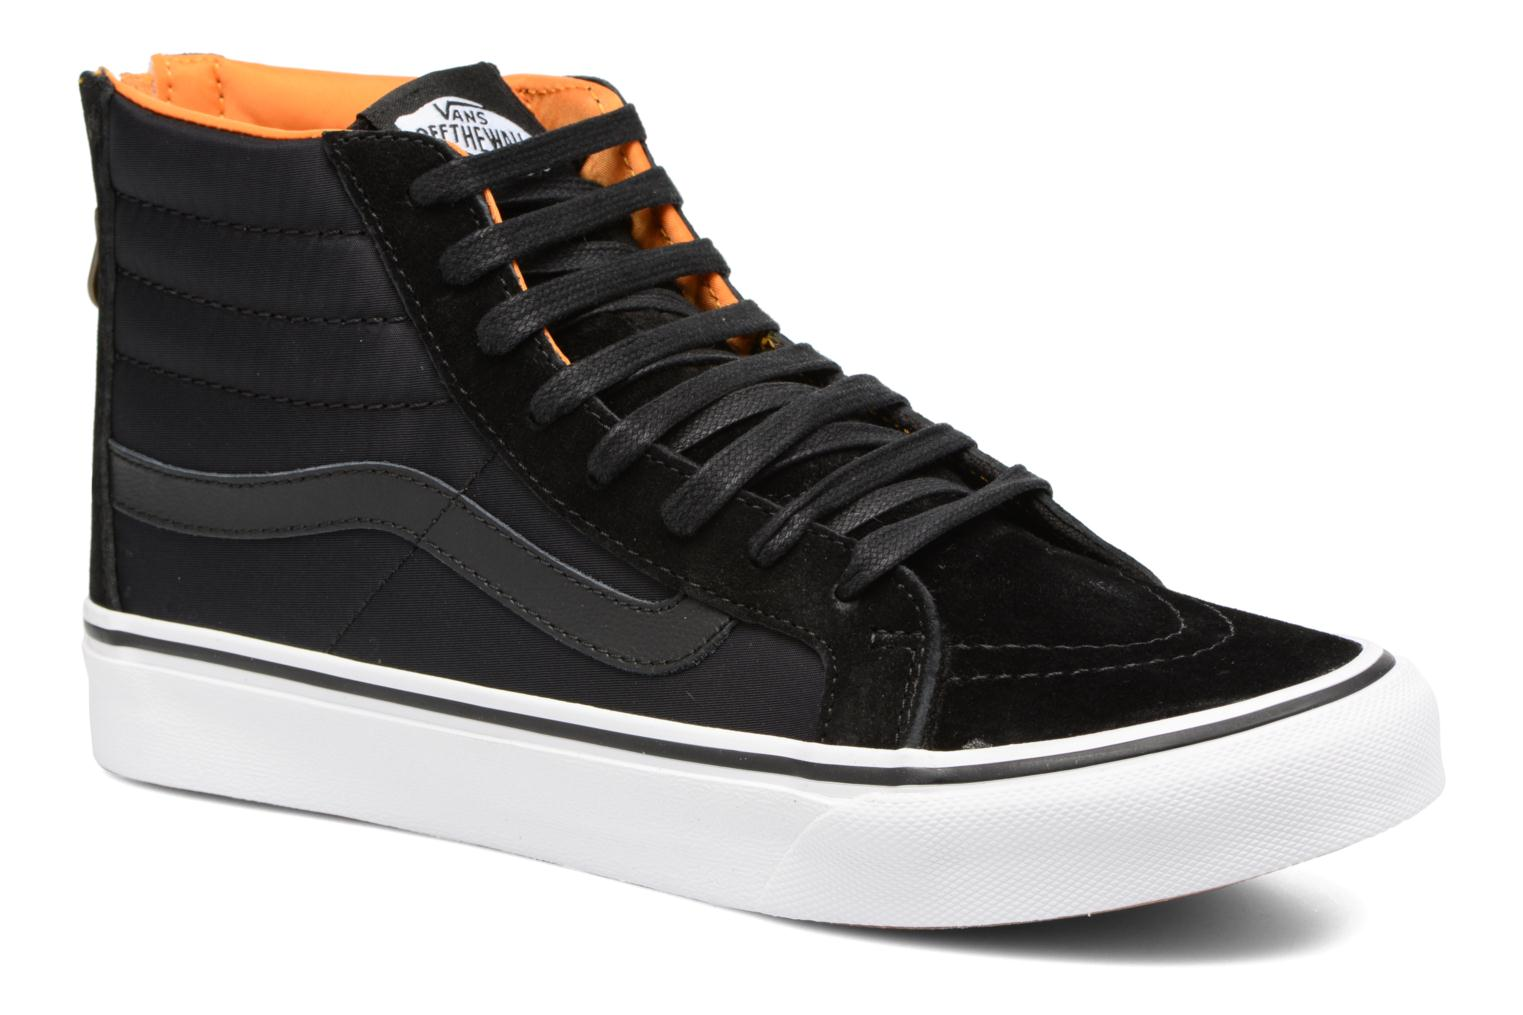 SK8-Hi Slim Zip Black/true white